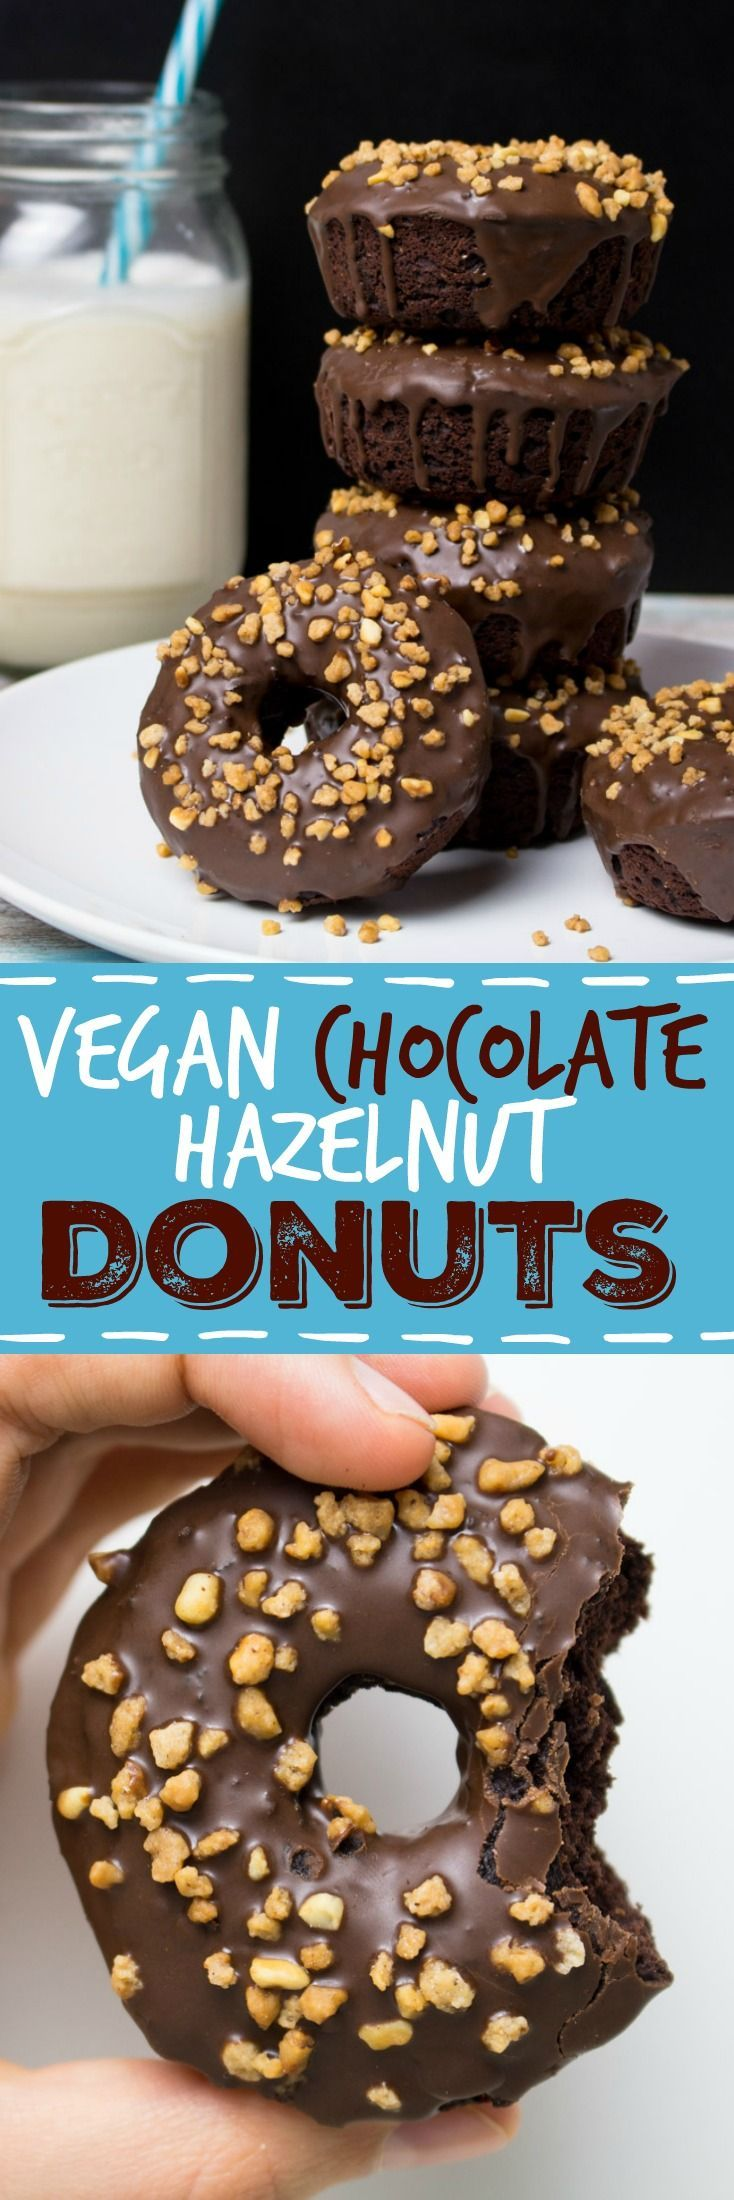 These vegan chocolate hazelnut donuts are not only super delicious and easy to make, but also healthier because they are baked, not fried! It might sound strange, but I used kidney beans for the batter, which made them so moist and chocolatey. #vegan #donuts #beans #doughnuts #dairyfree #chocolate #hazelnuts